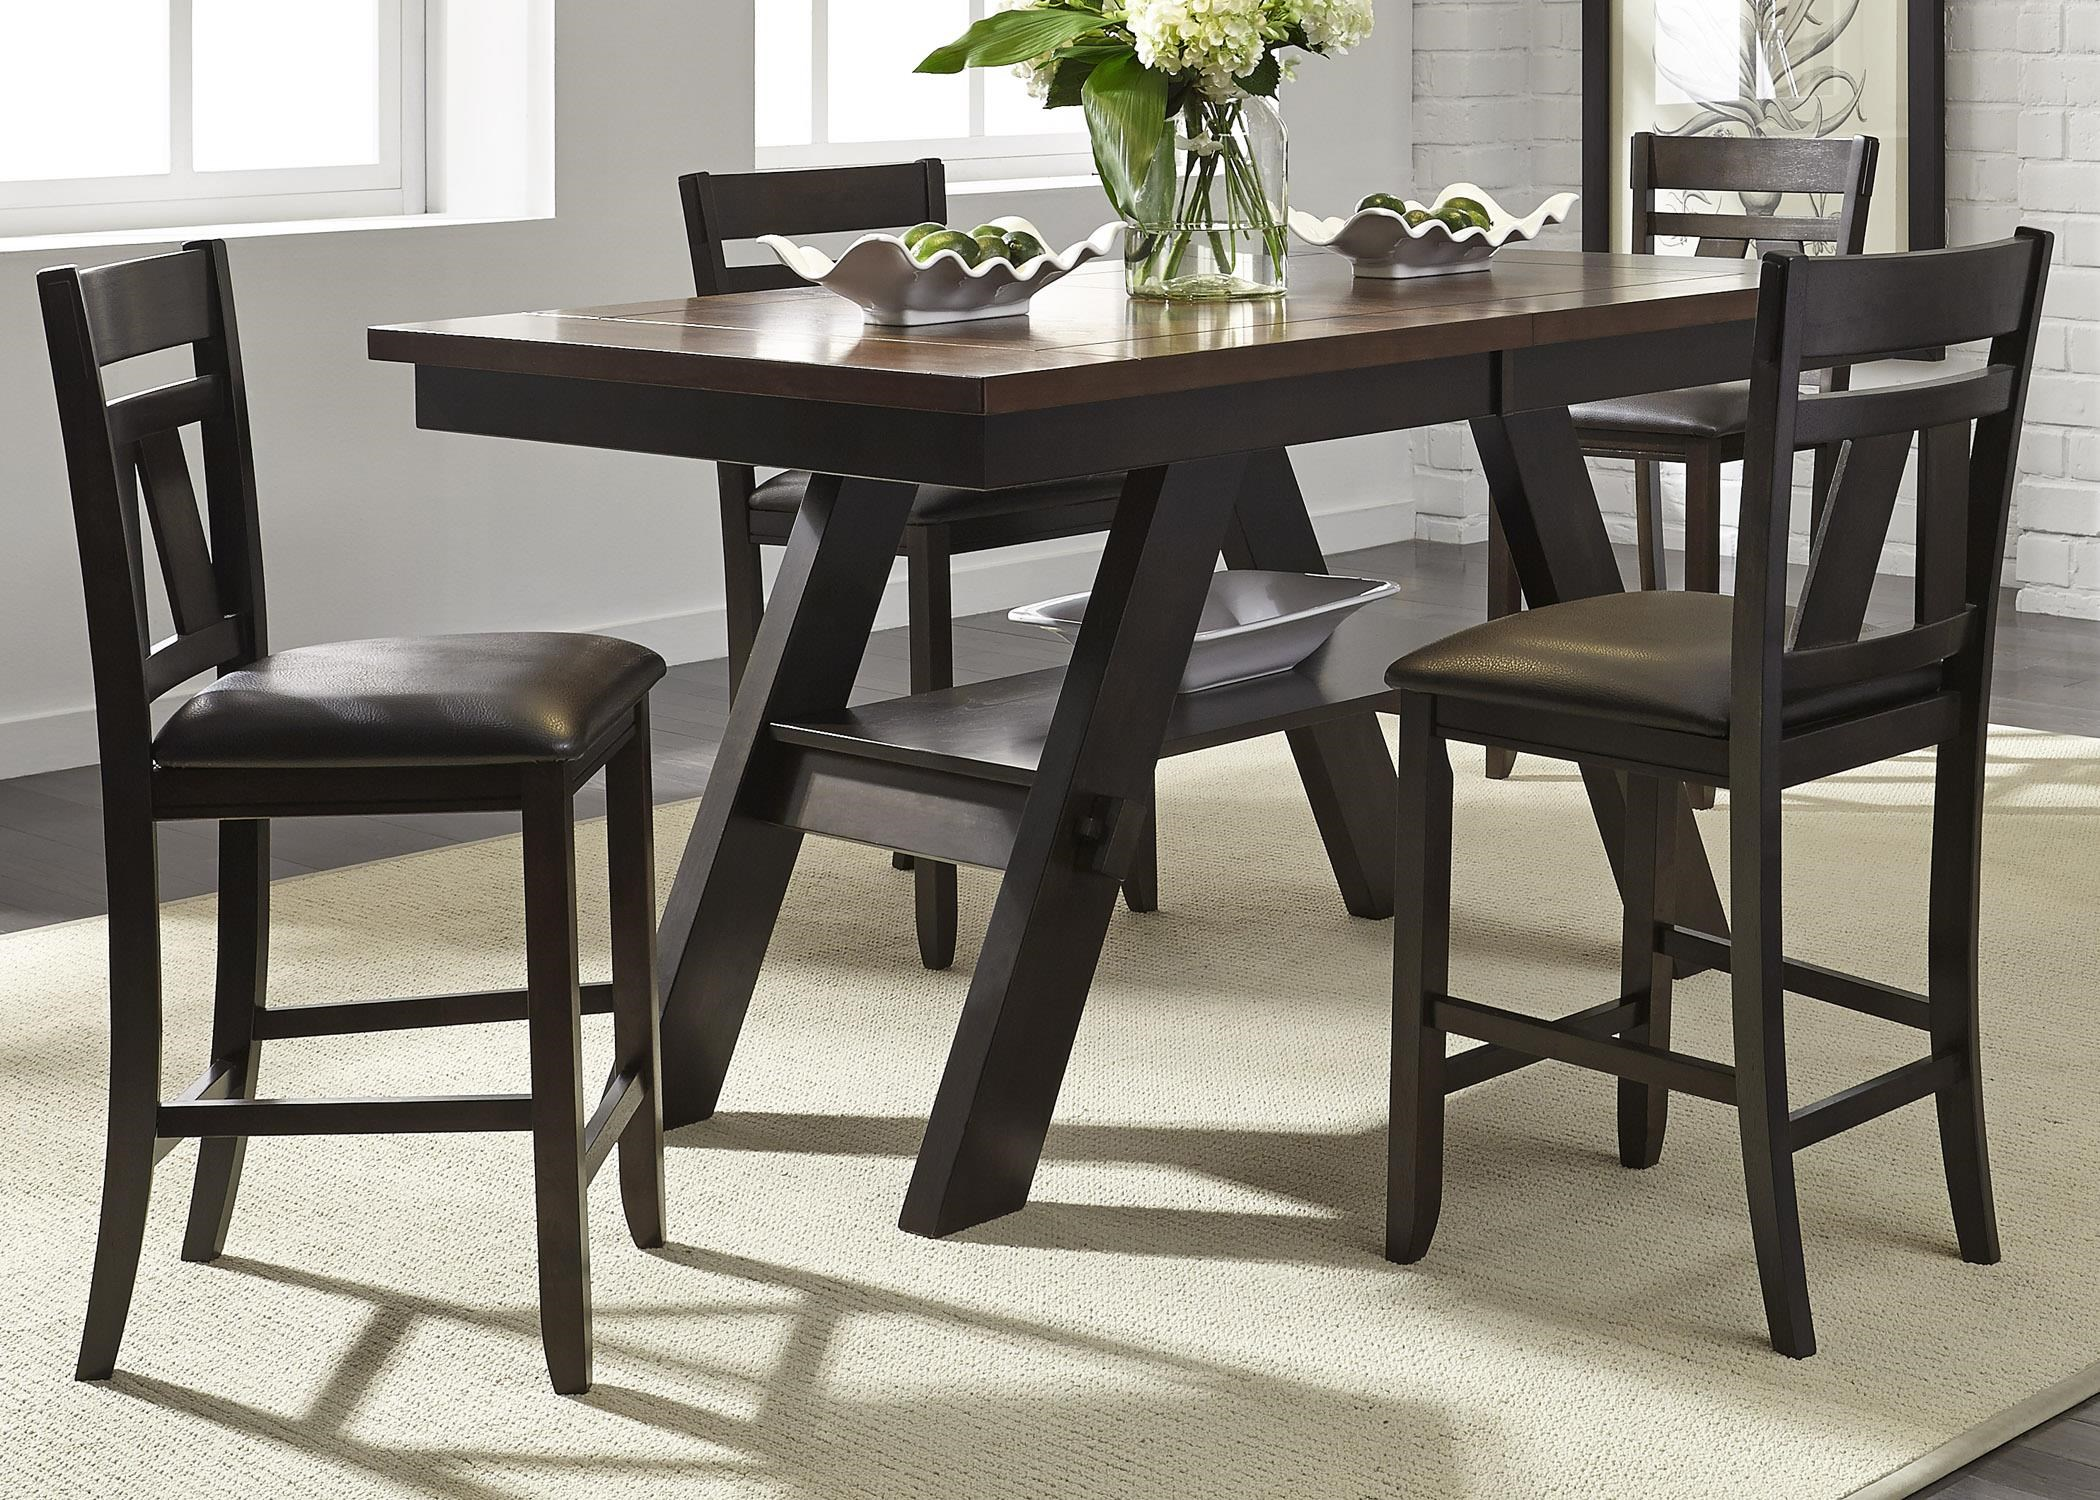 Liberty Furniture Lawson 5 Piece Gathering Table Set : gathering table sets - pezcame.com